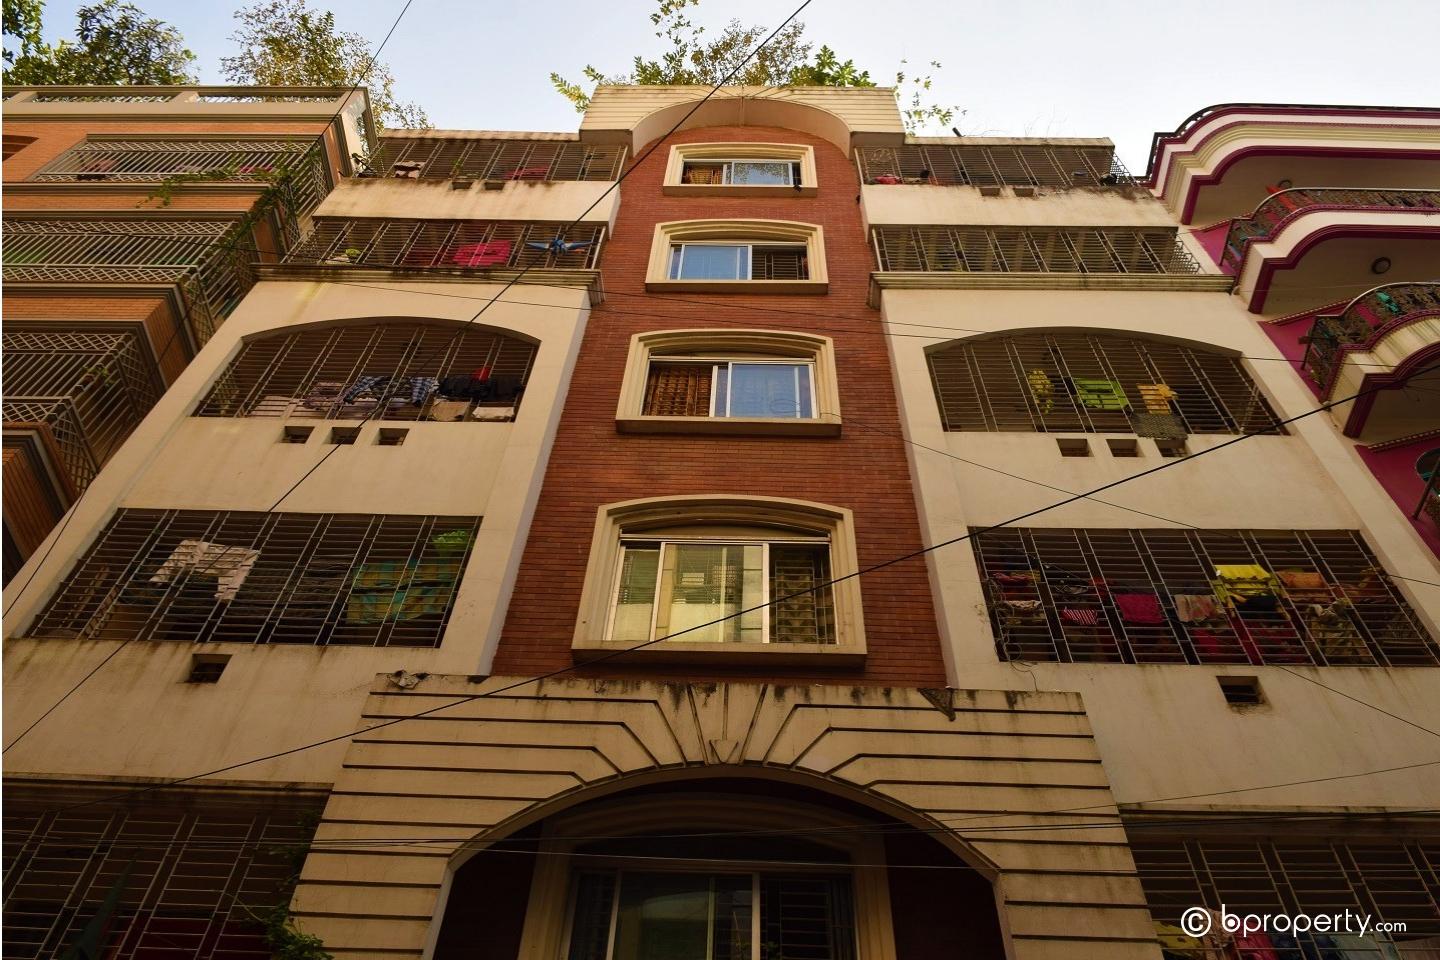 Among the flats for sale in Banasree, this one surely stands out